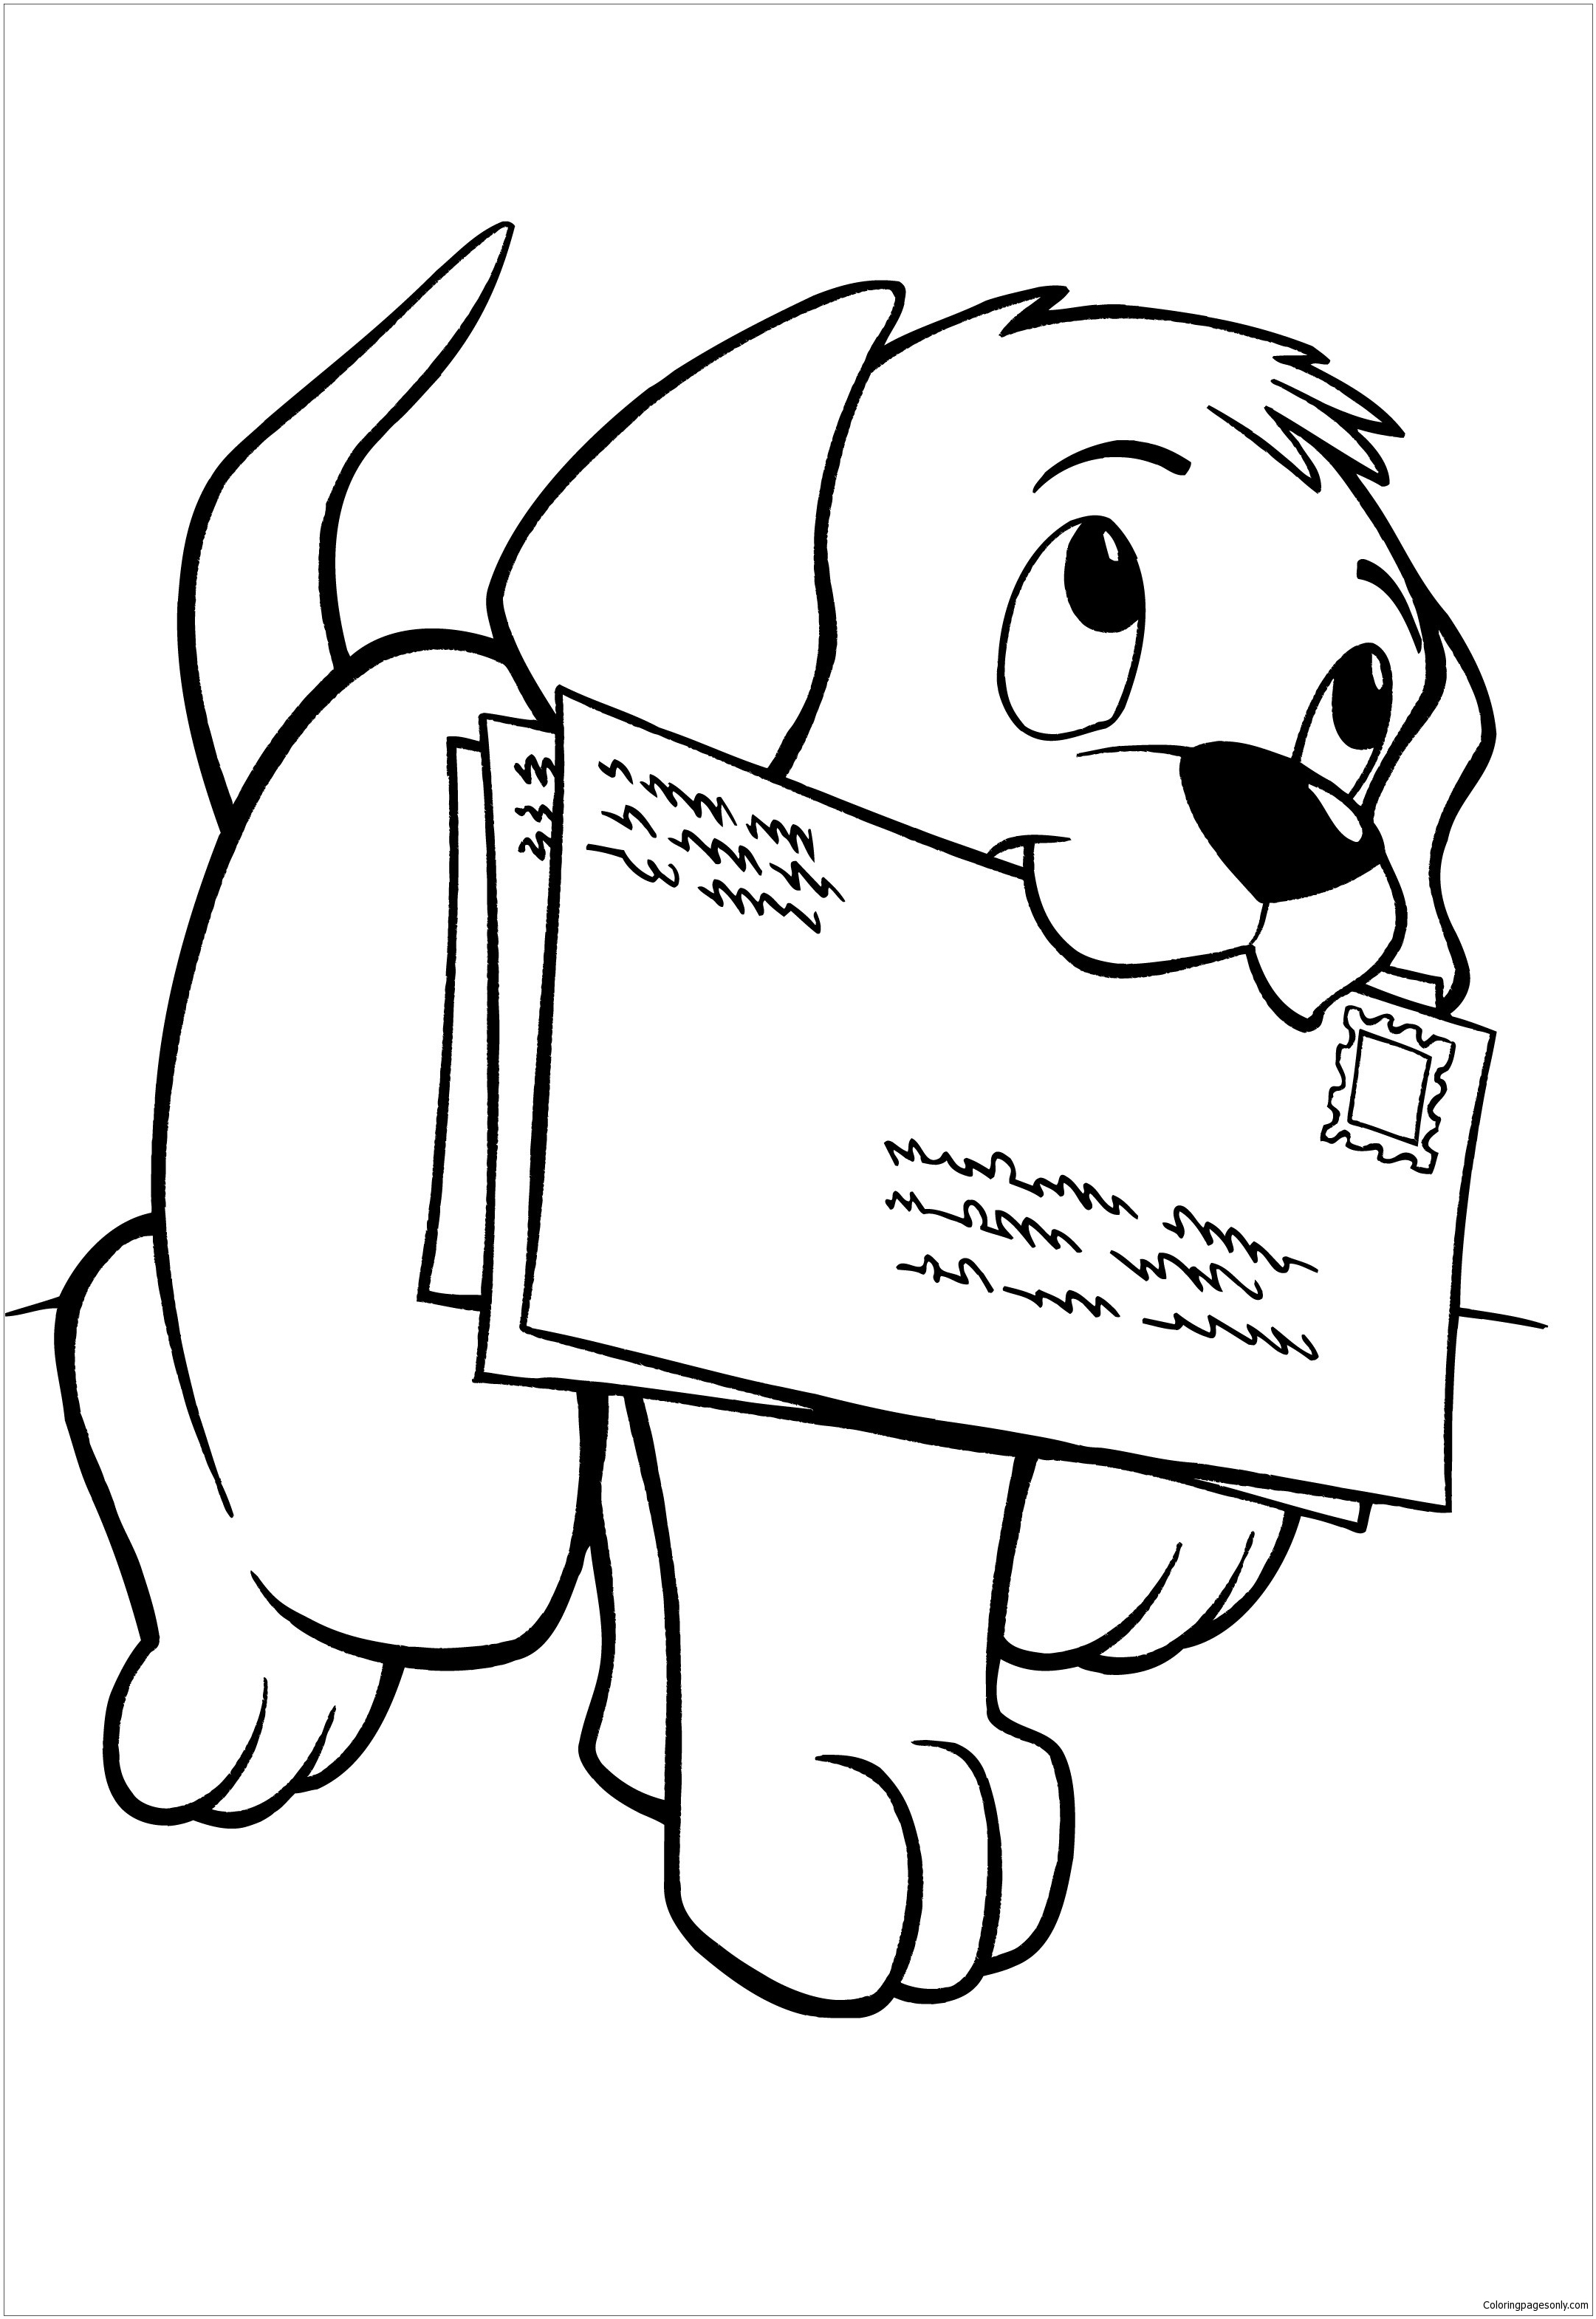 Cute Puppy 8 Coloring Page Free